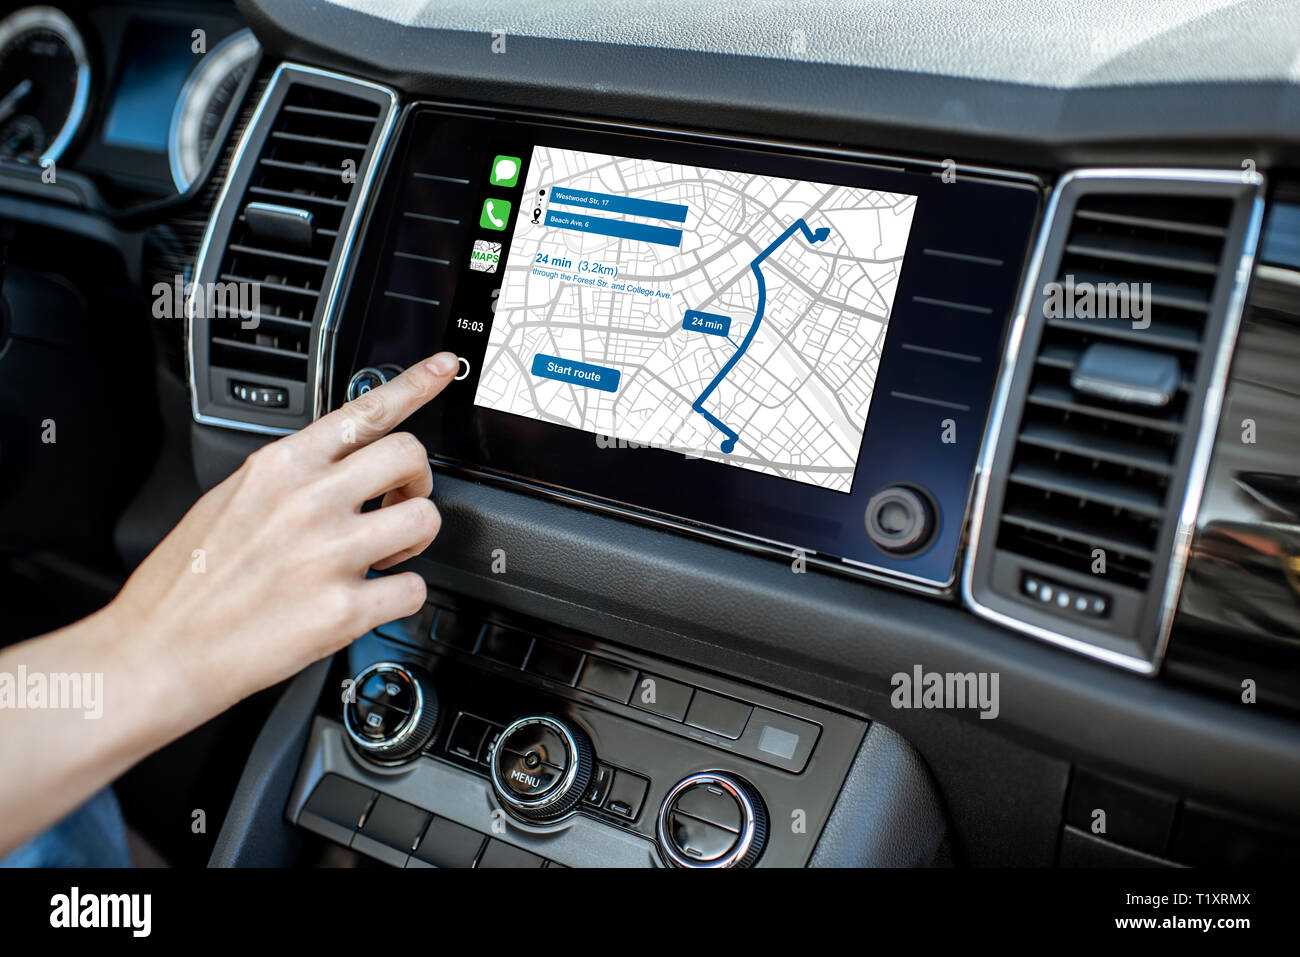 Touching a monitor with navigation map of the modern car, close-up view - Stock Image